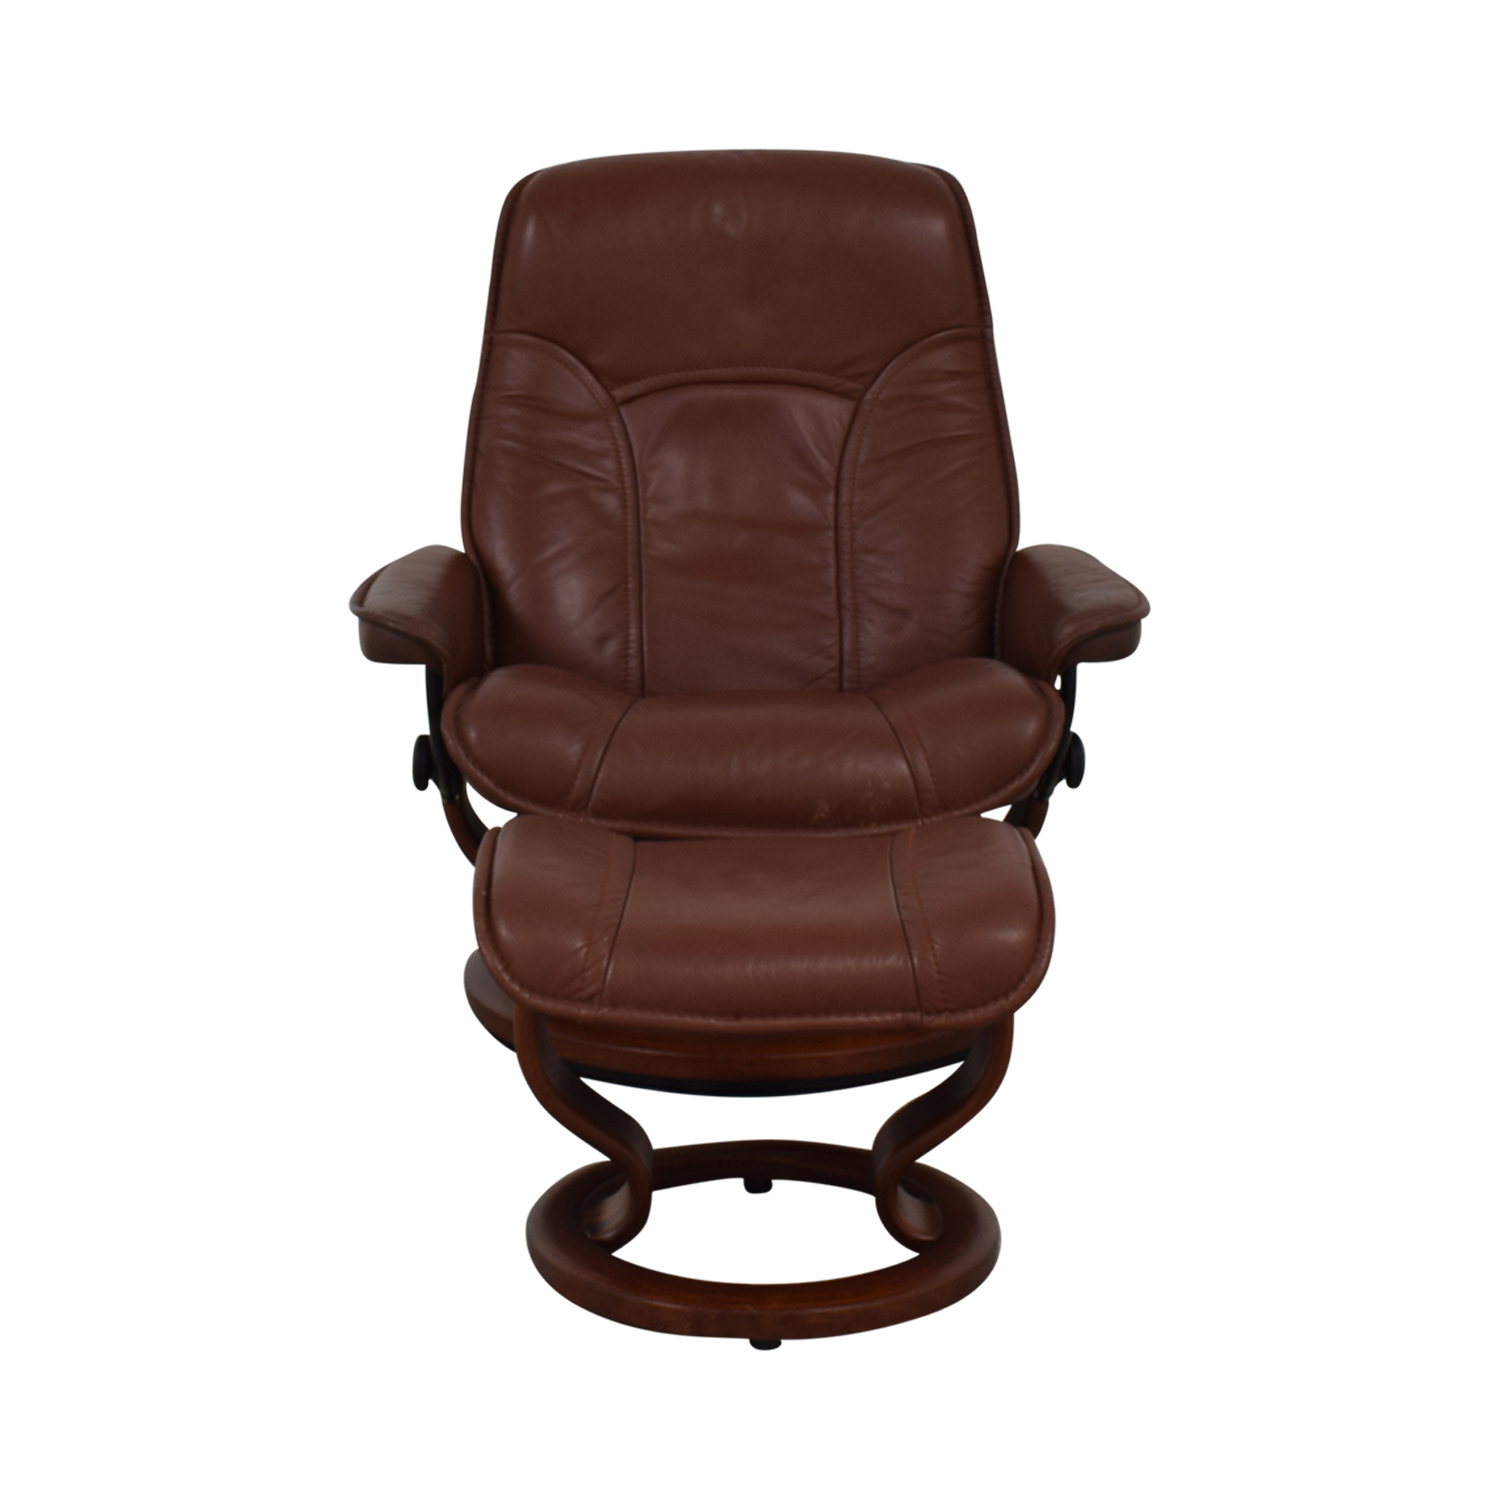 Brown Swivel Chair with Ottoman